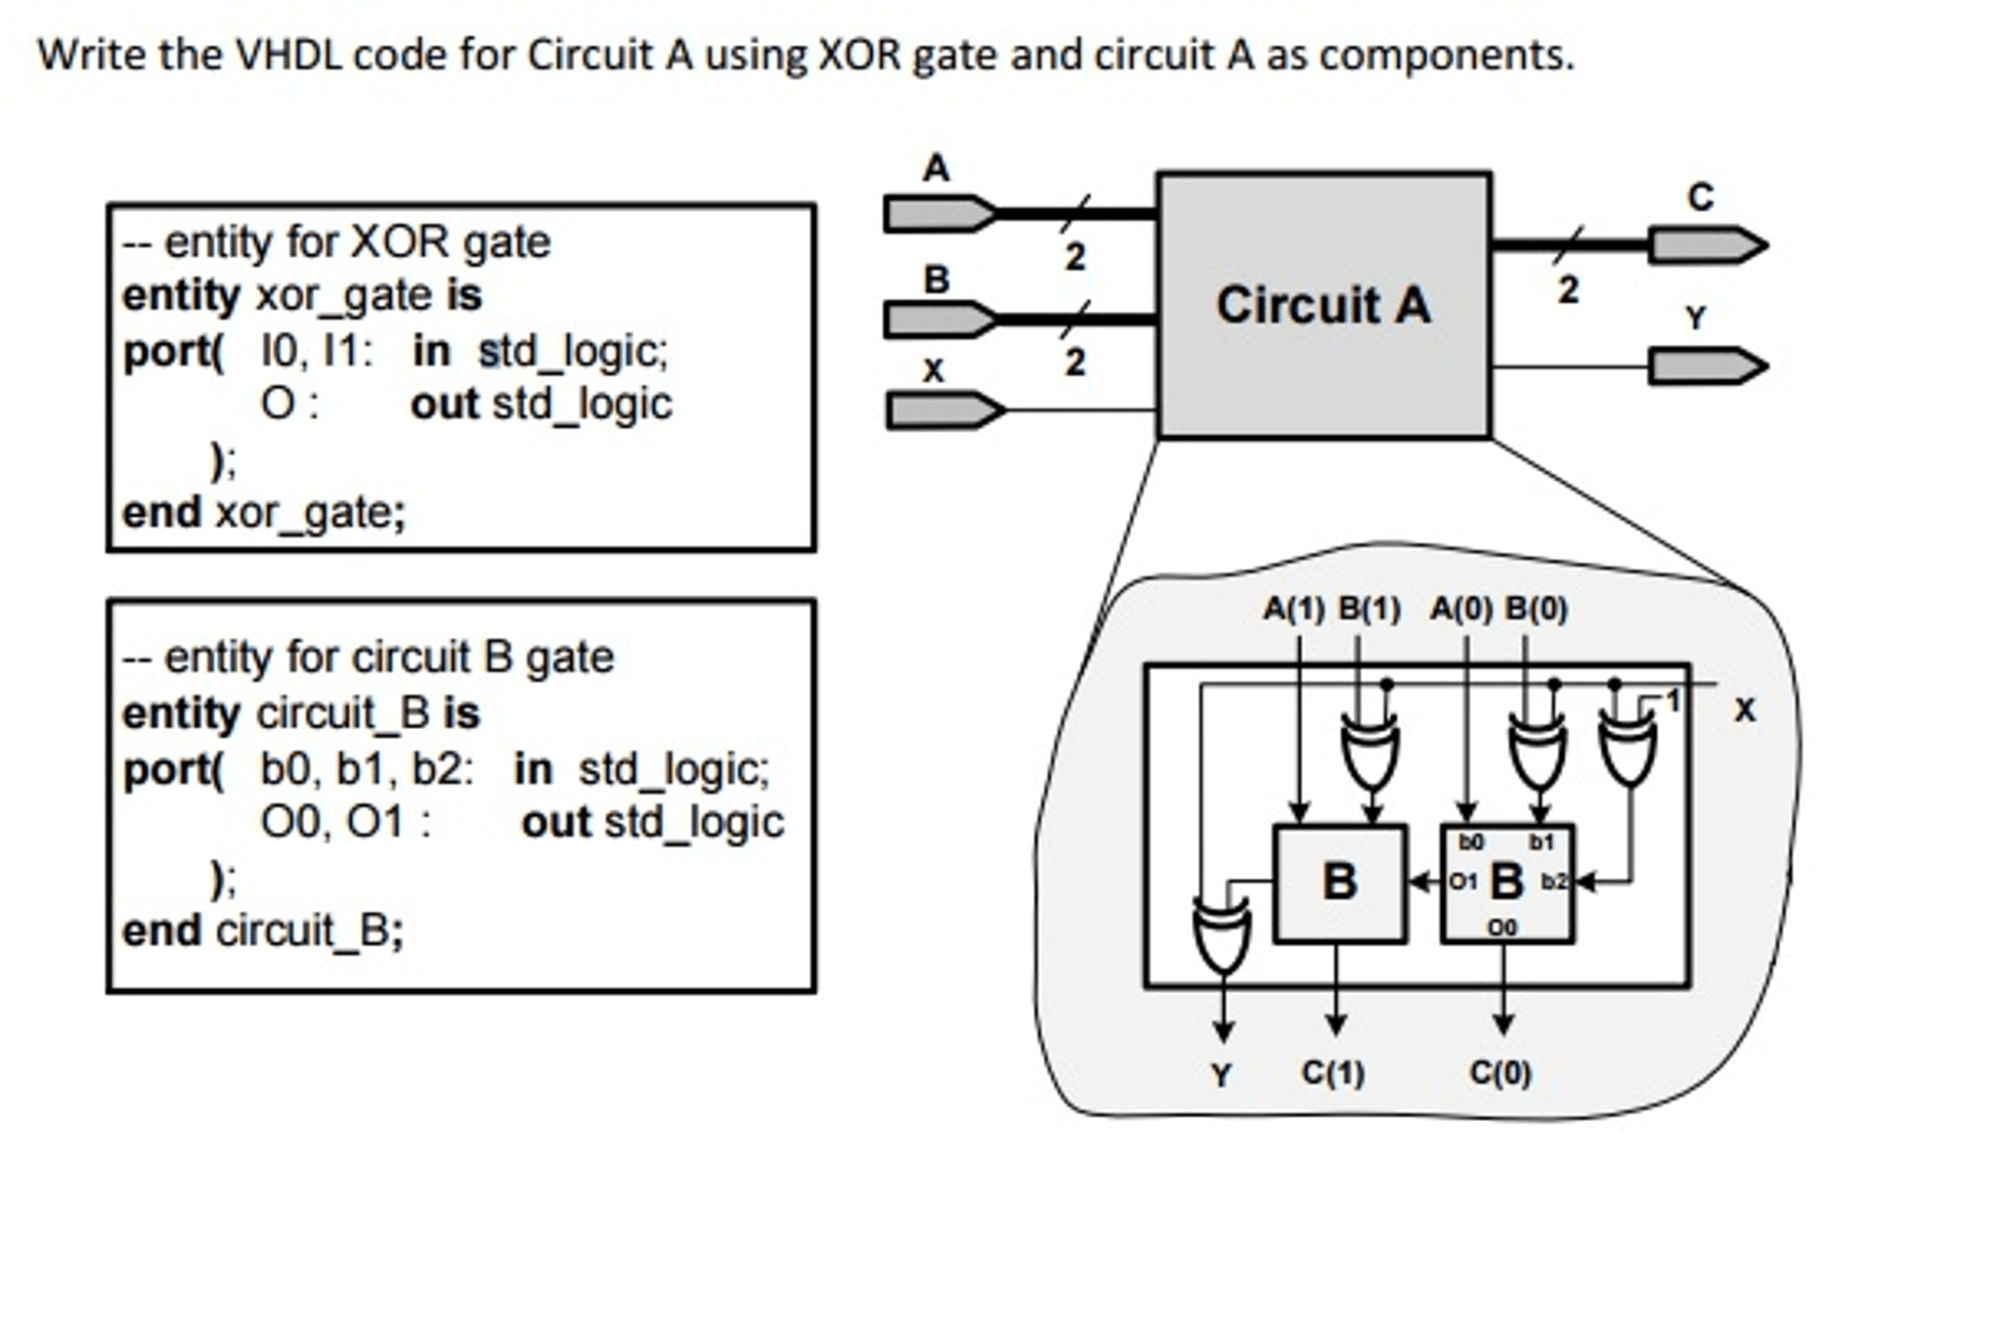 hight resolution of write the vhdl code for circuit a using xor gate a